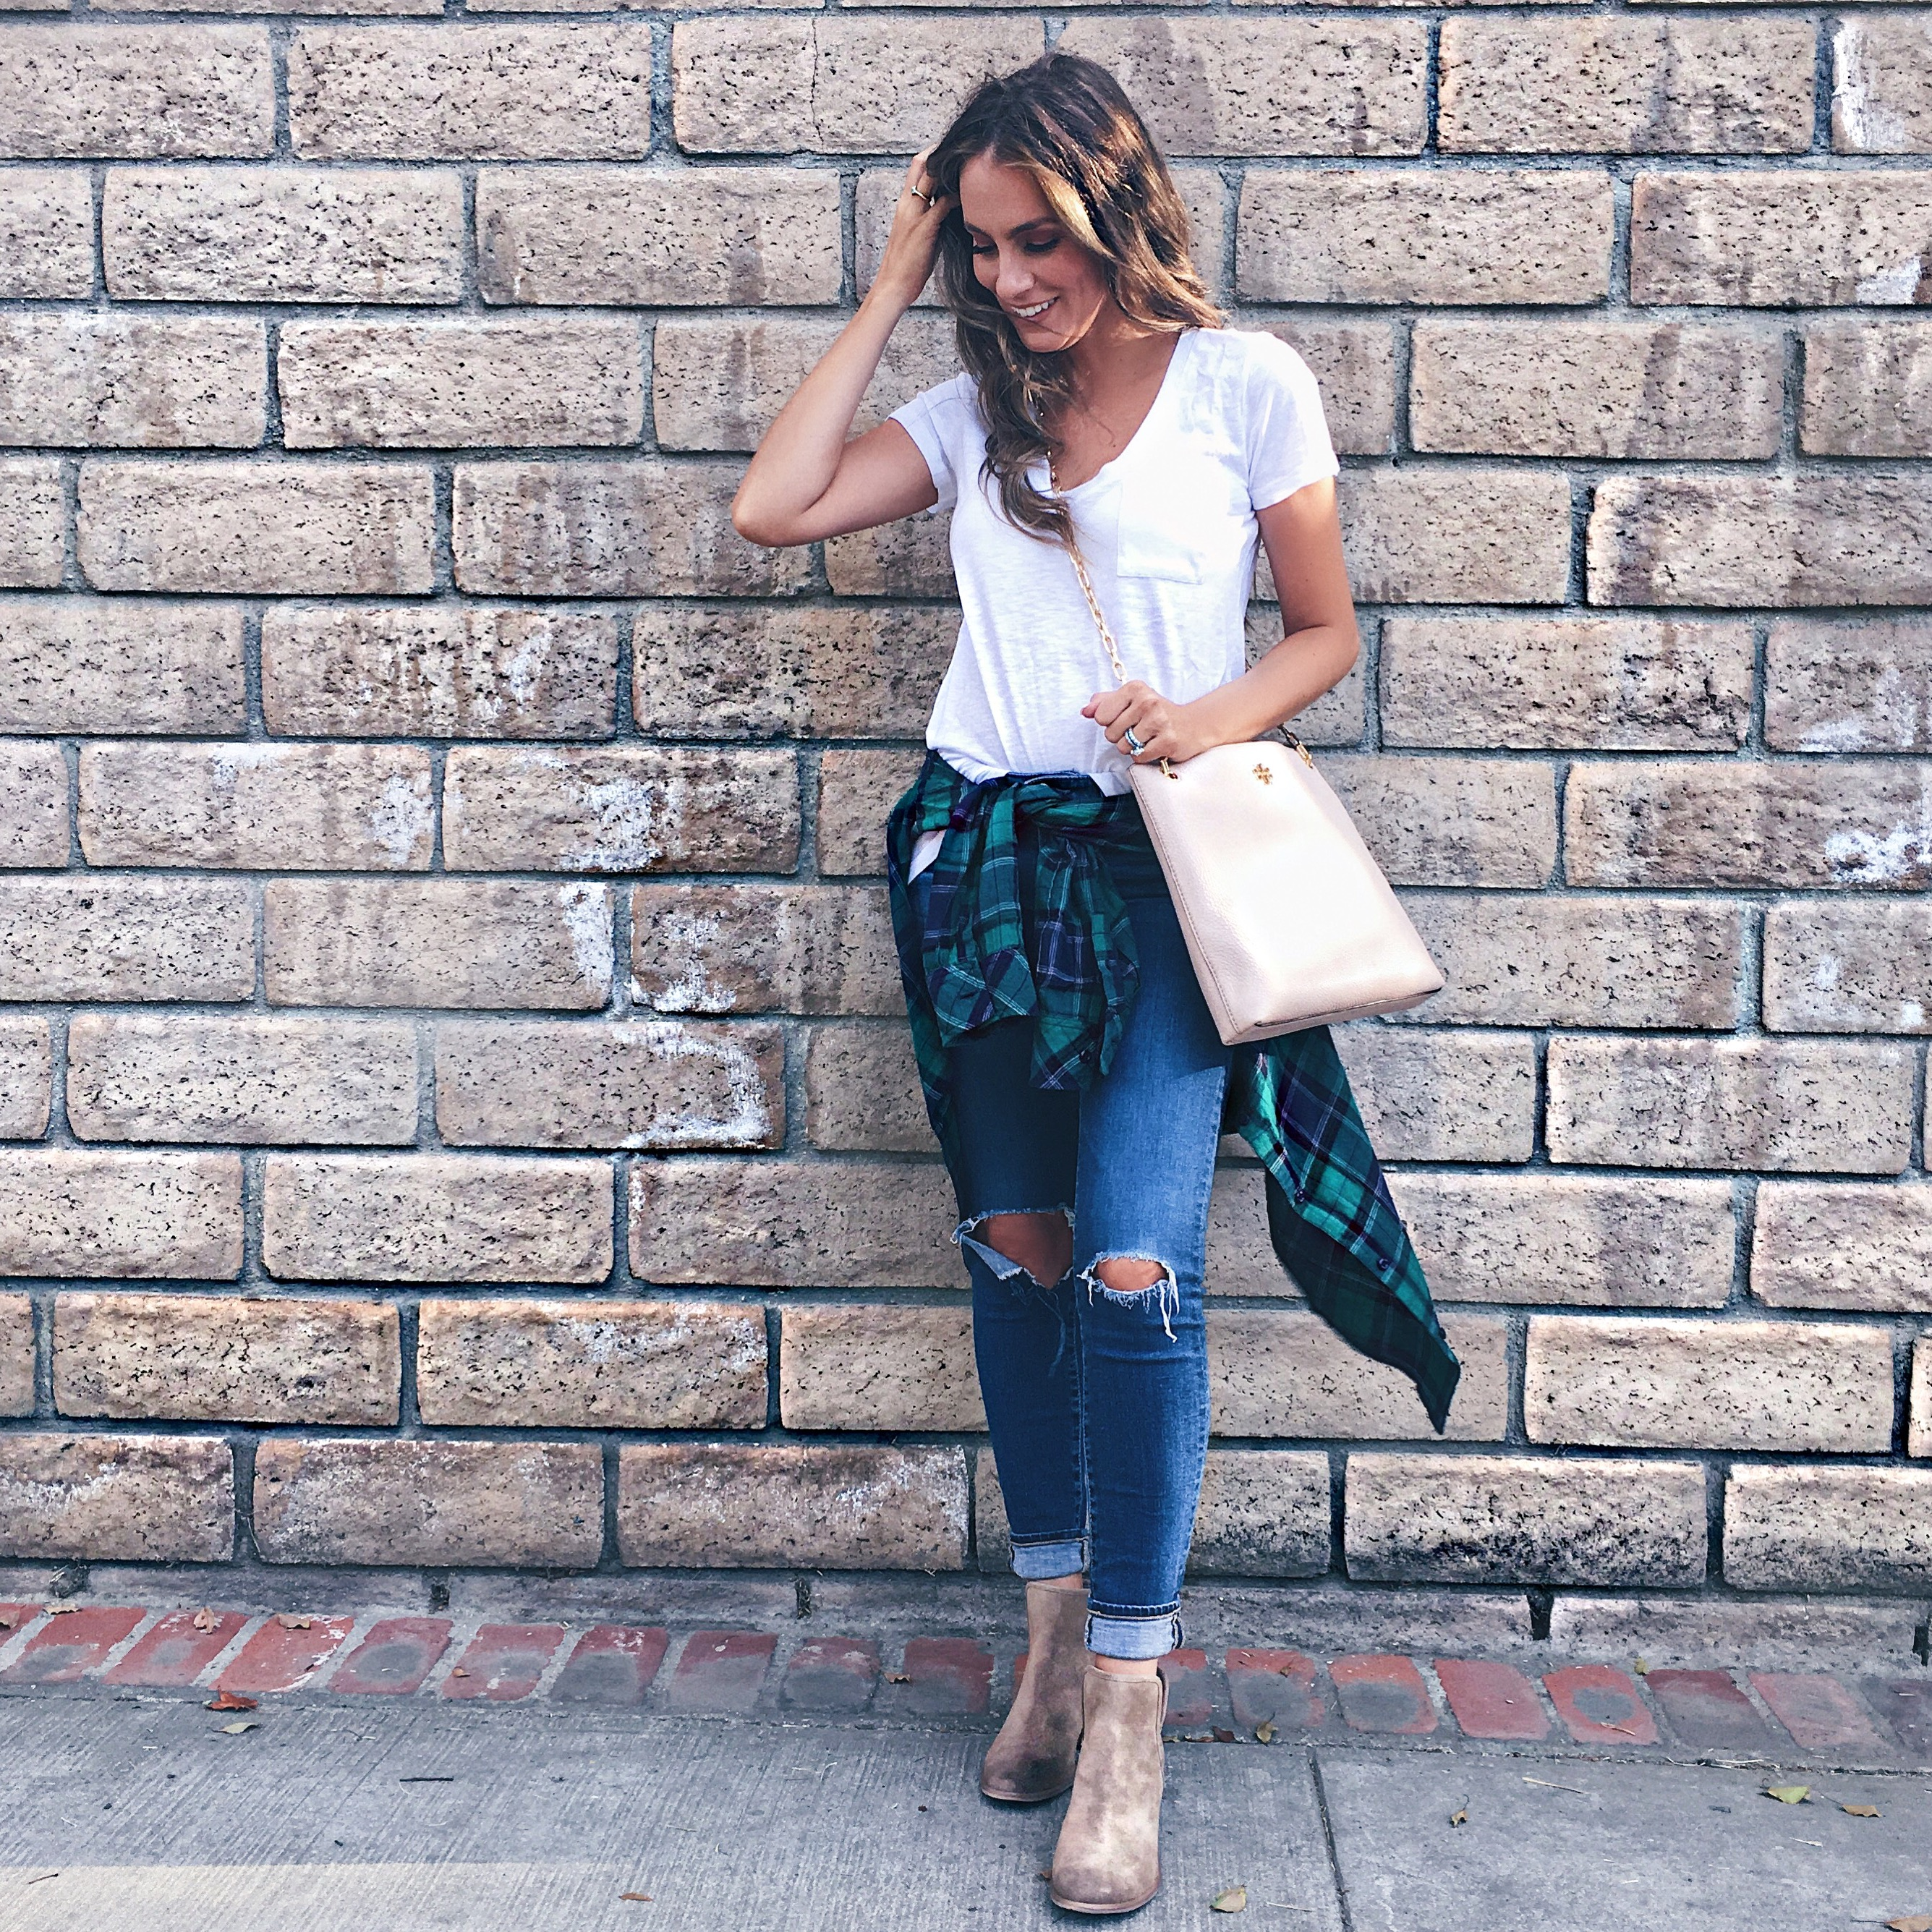 jeans and tee shirt outfit nordstrom anniversary sale angela lanter hello gorgeous